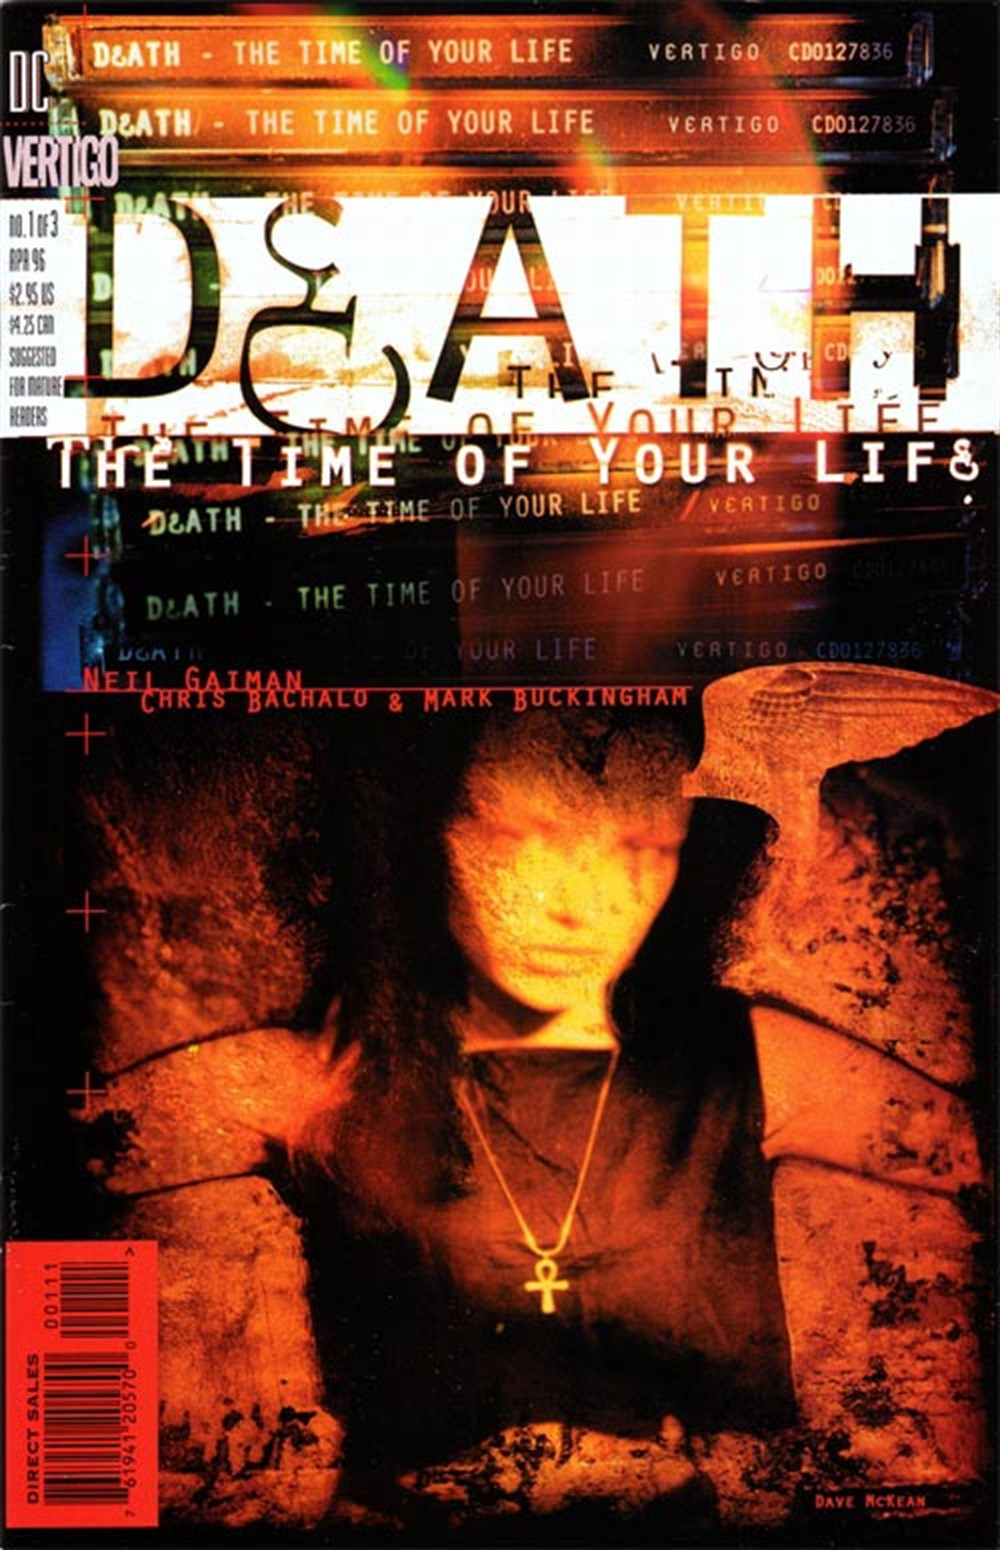 DEATH - THE TIME OF YOUR LIFE (1996) #1 OF 3